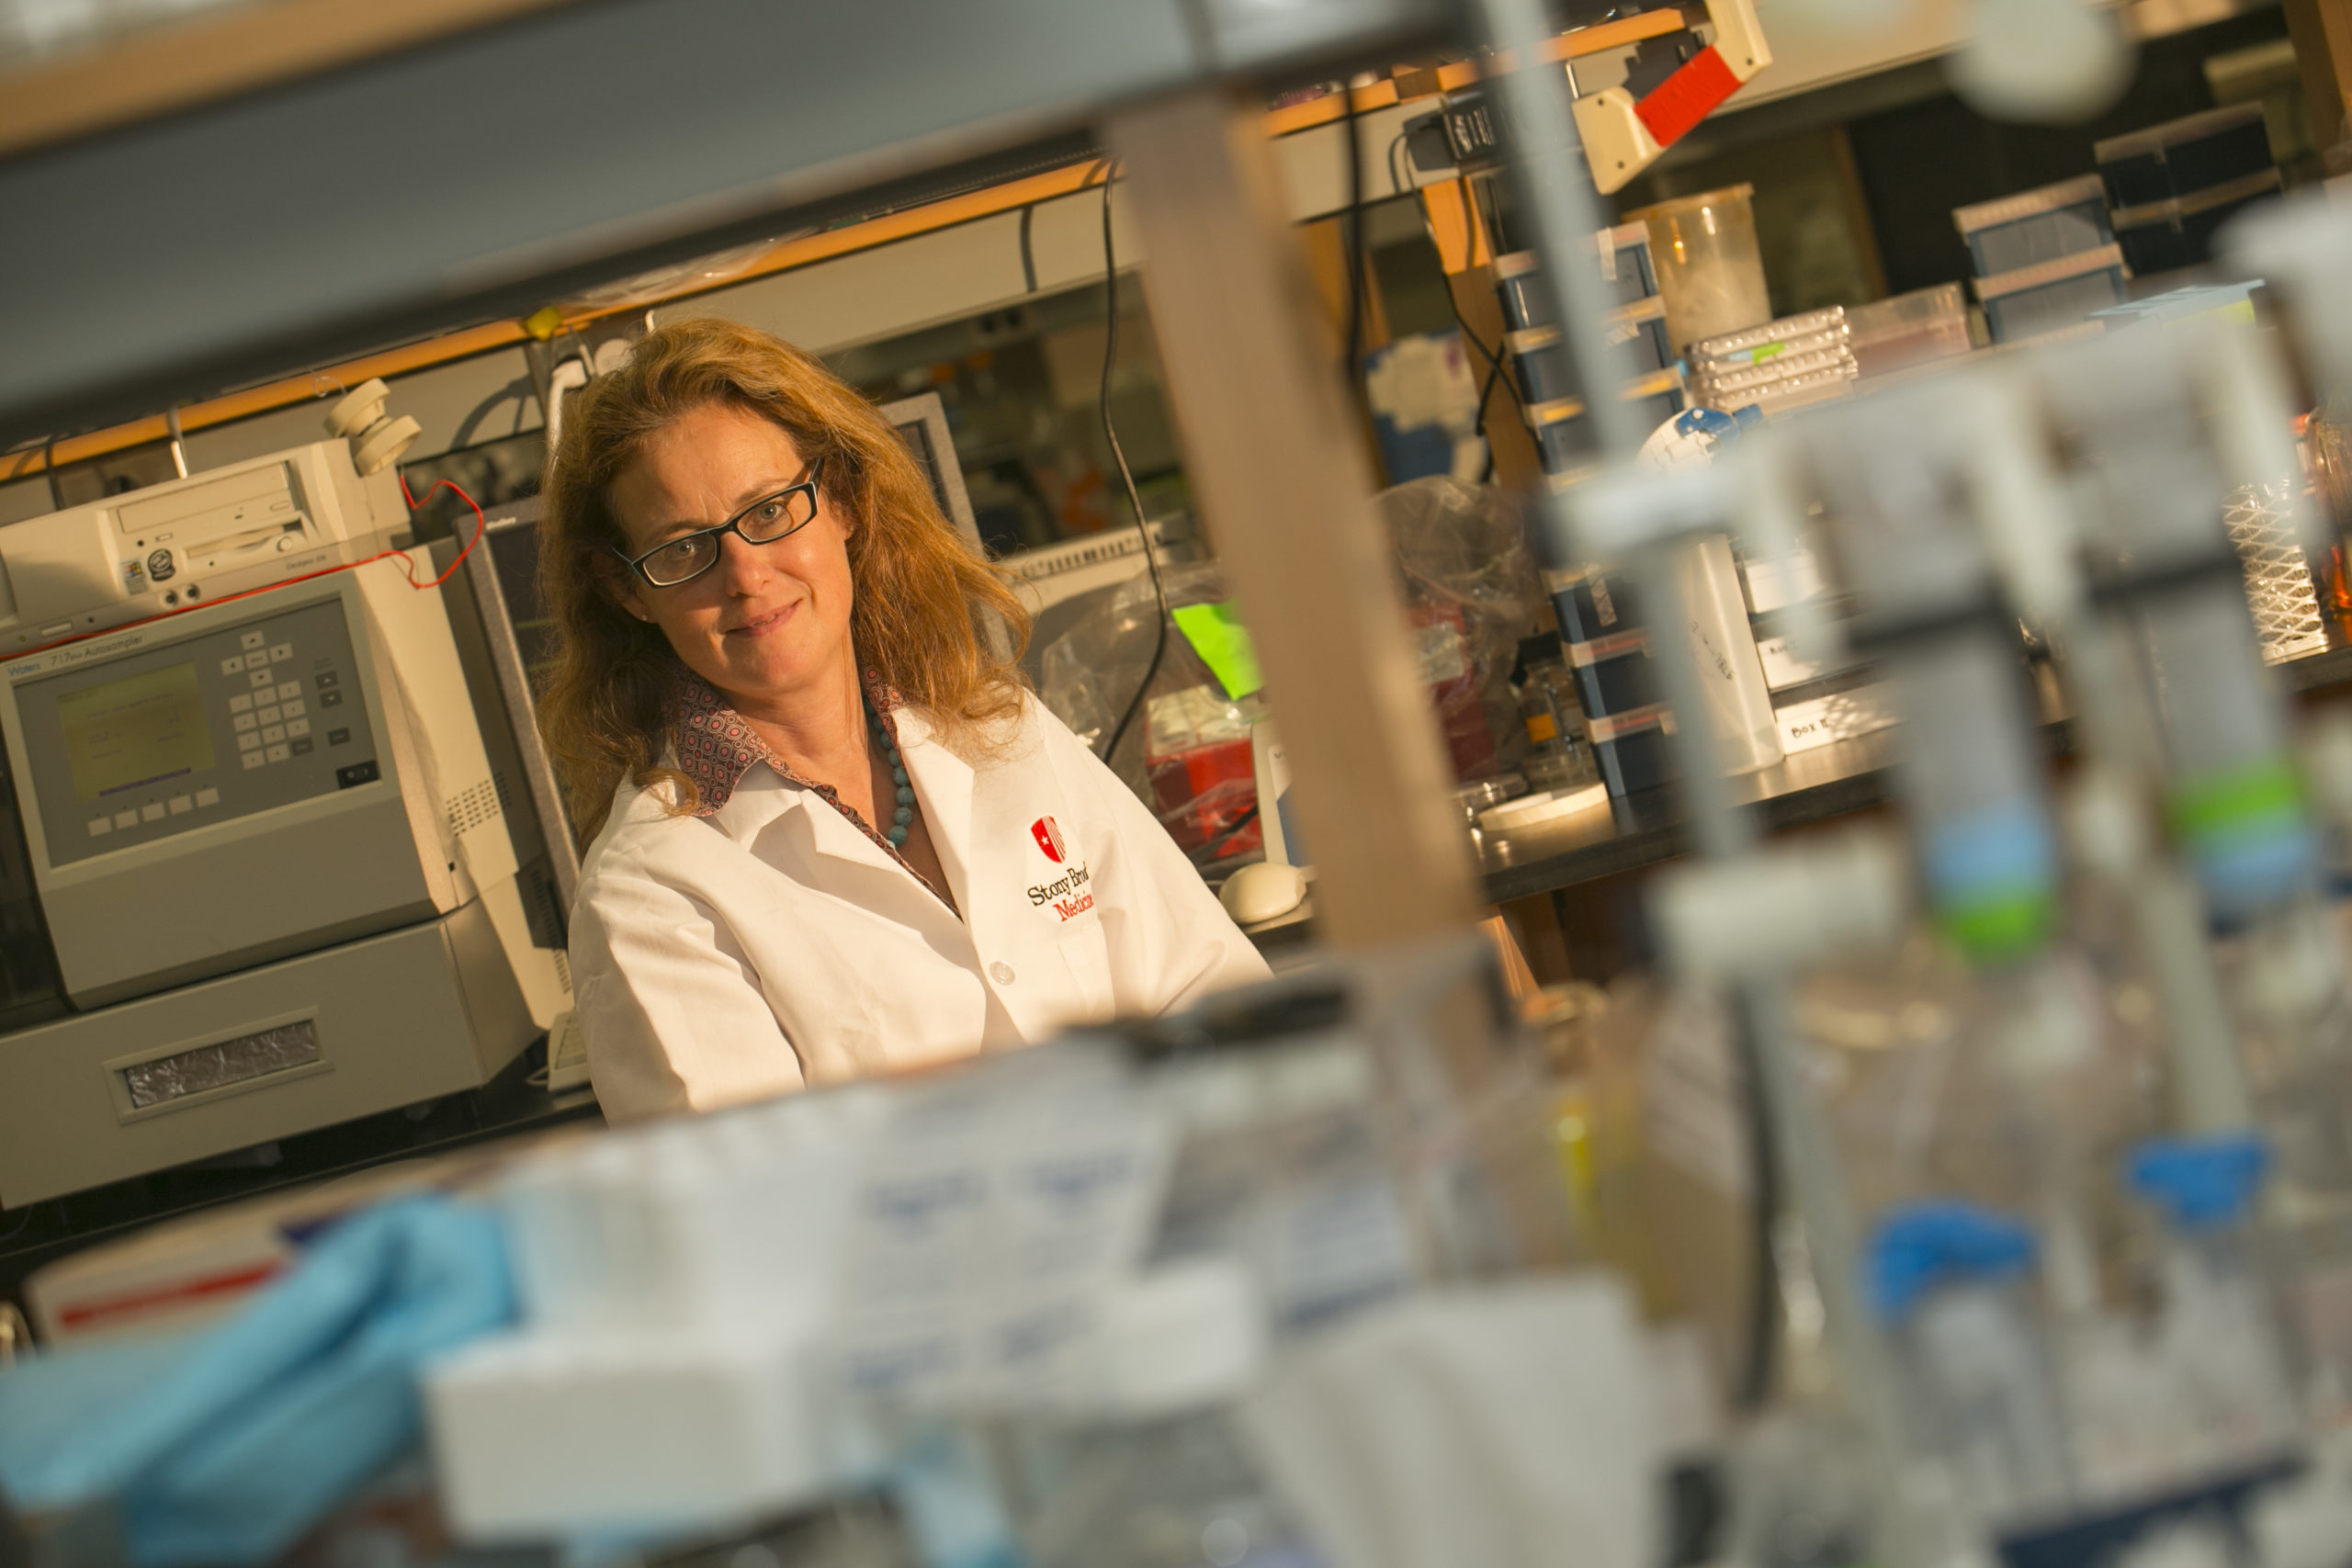 Dr. Bettina Fries, director of infectious diseases at Stony Brook University's Renaissance School of Medicine.